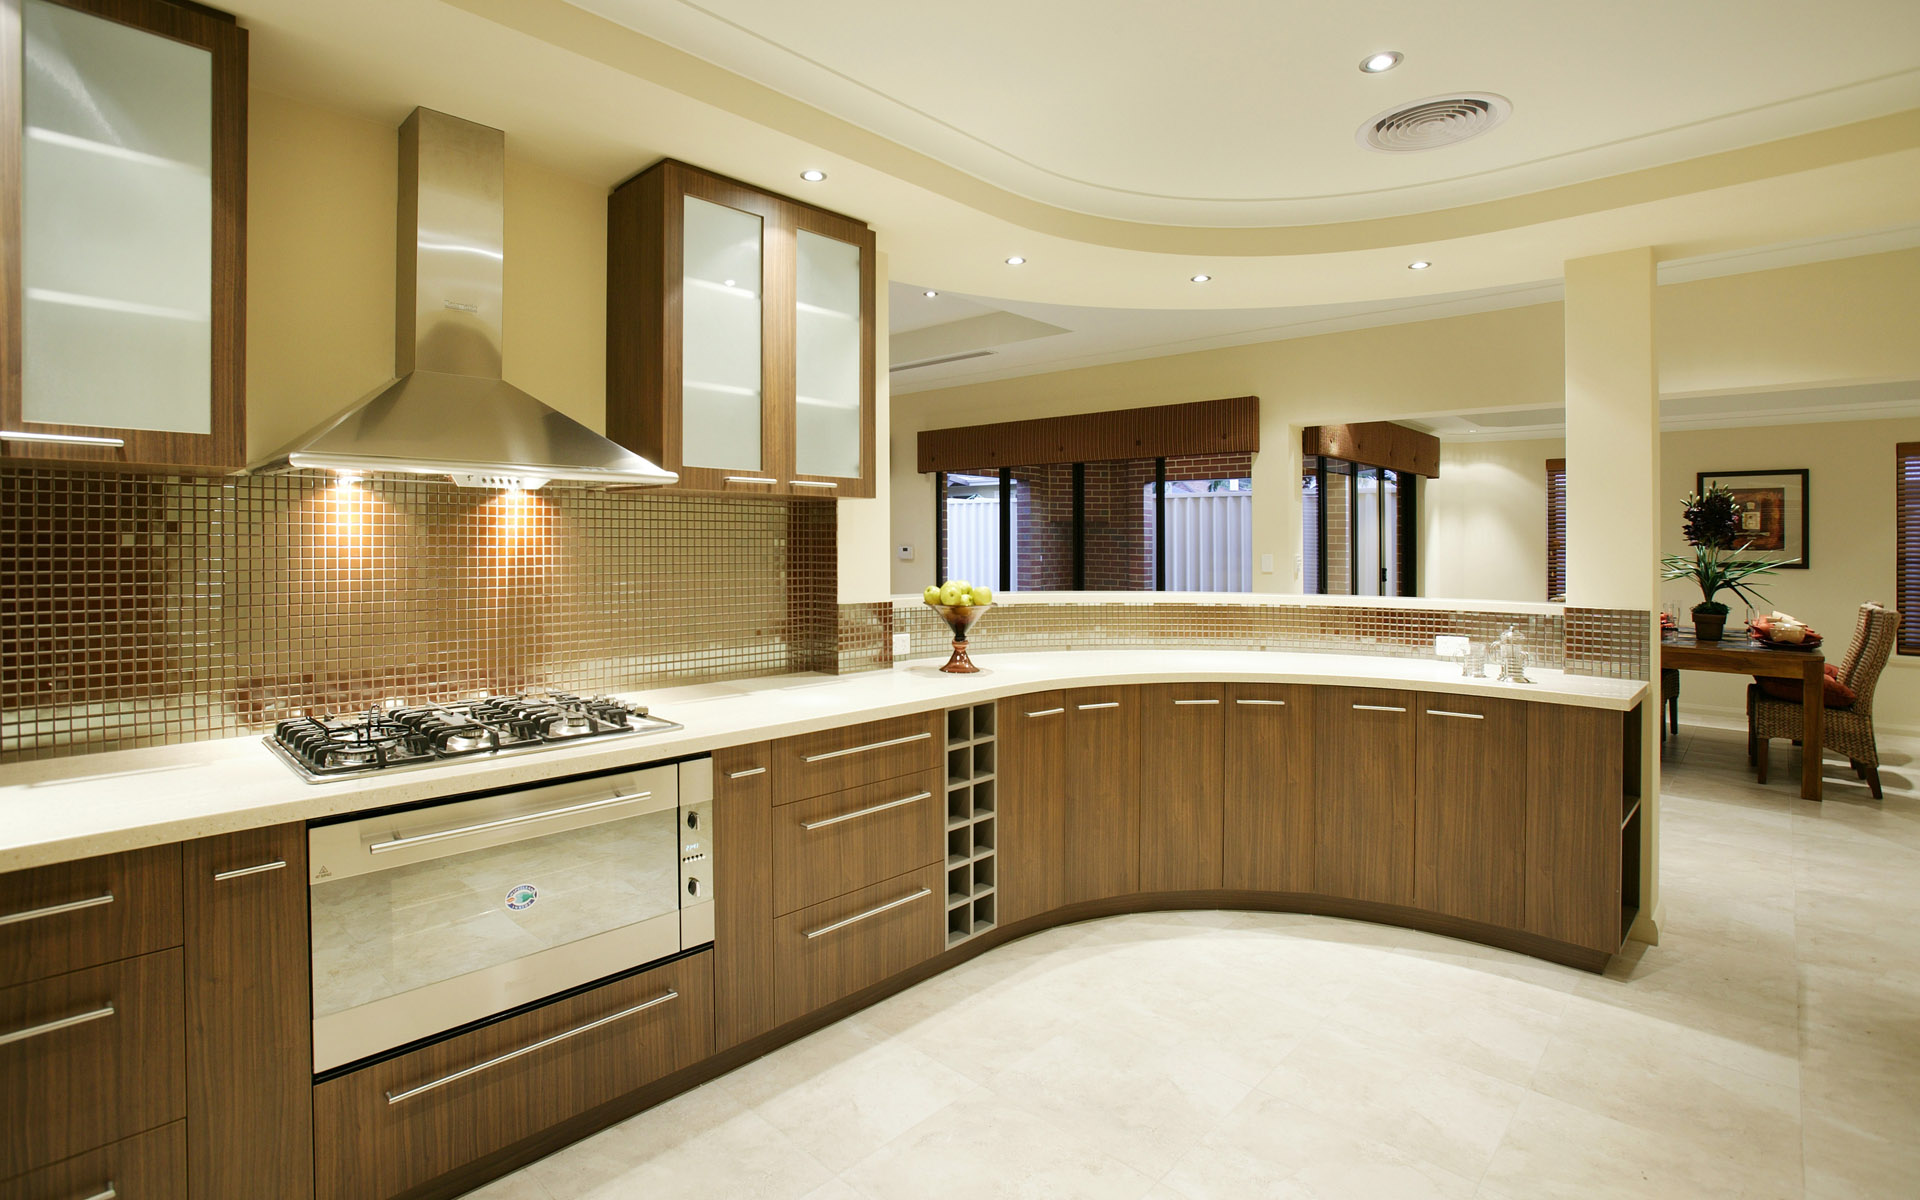 Modern kitchen design ideas kitchen designs al habib for Modern kitchen design